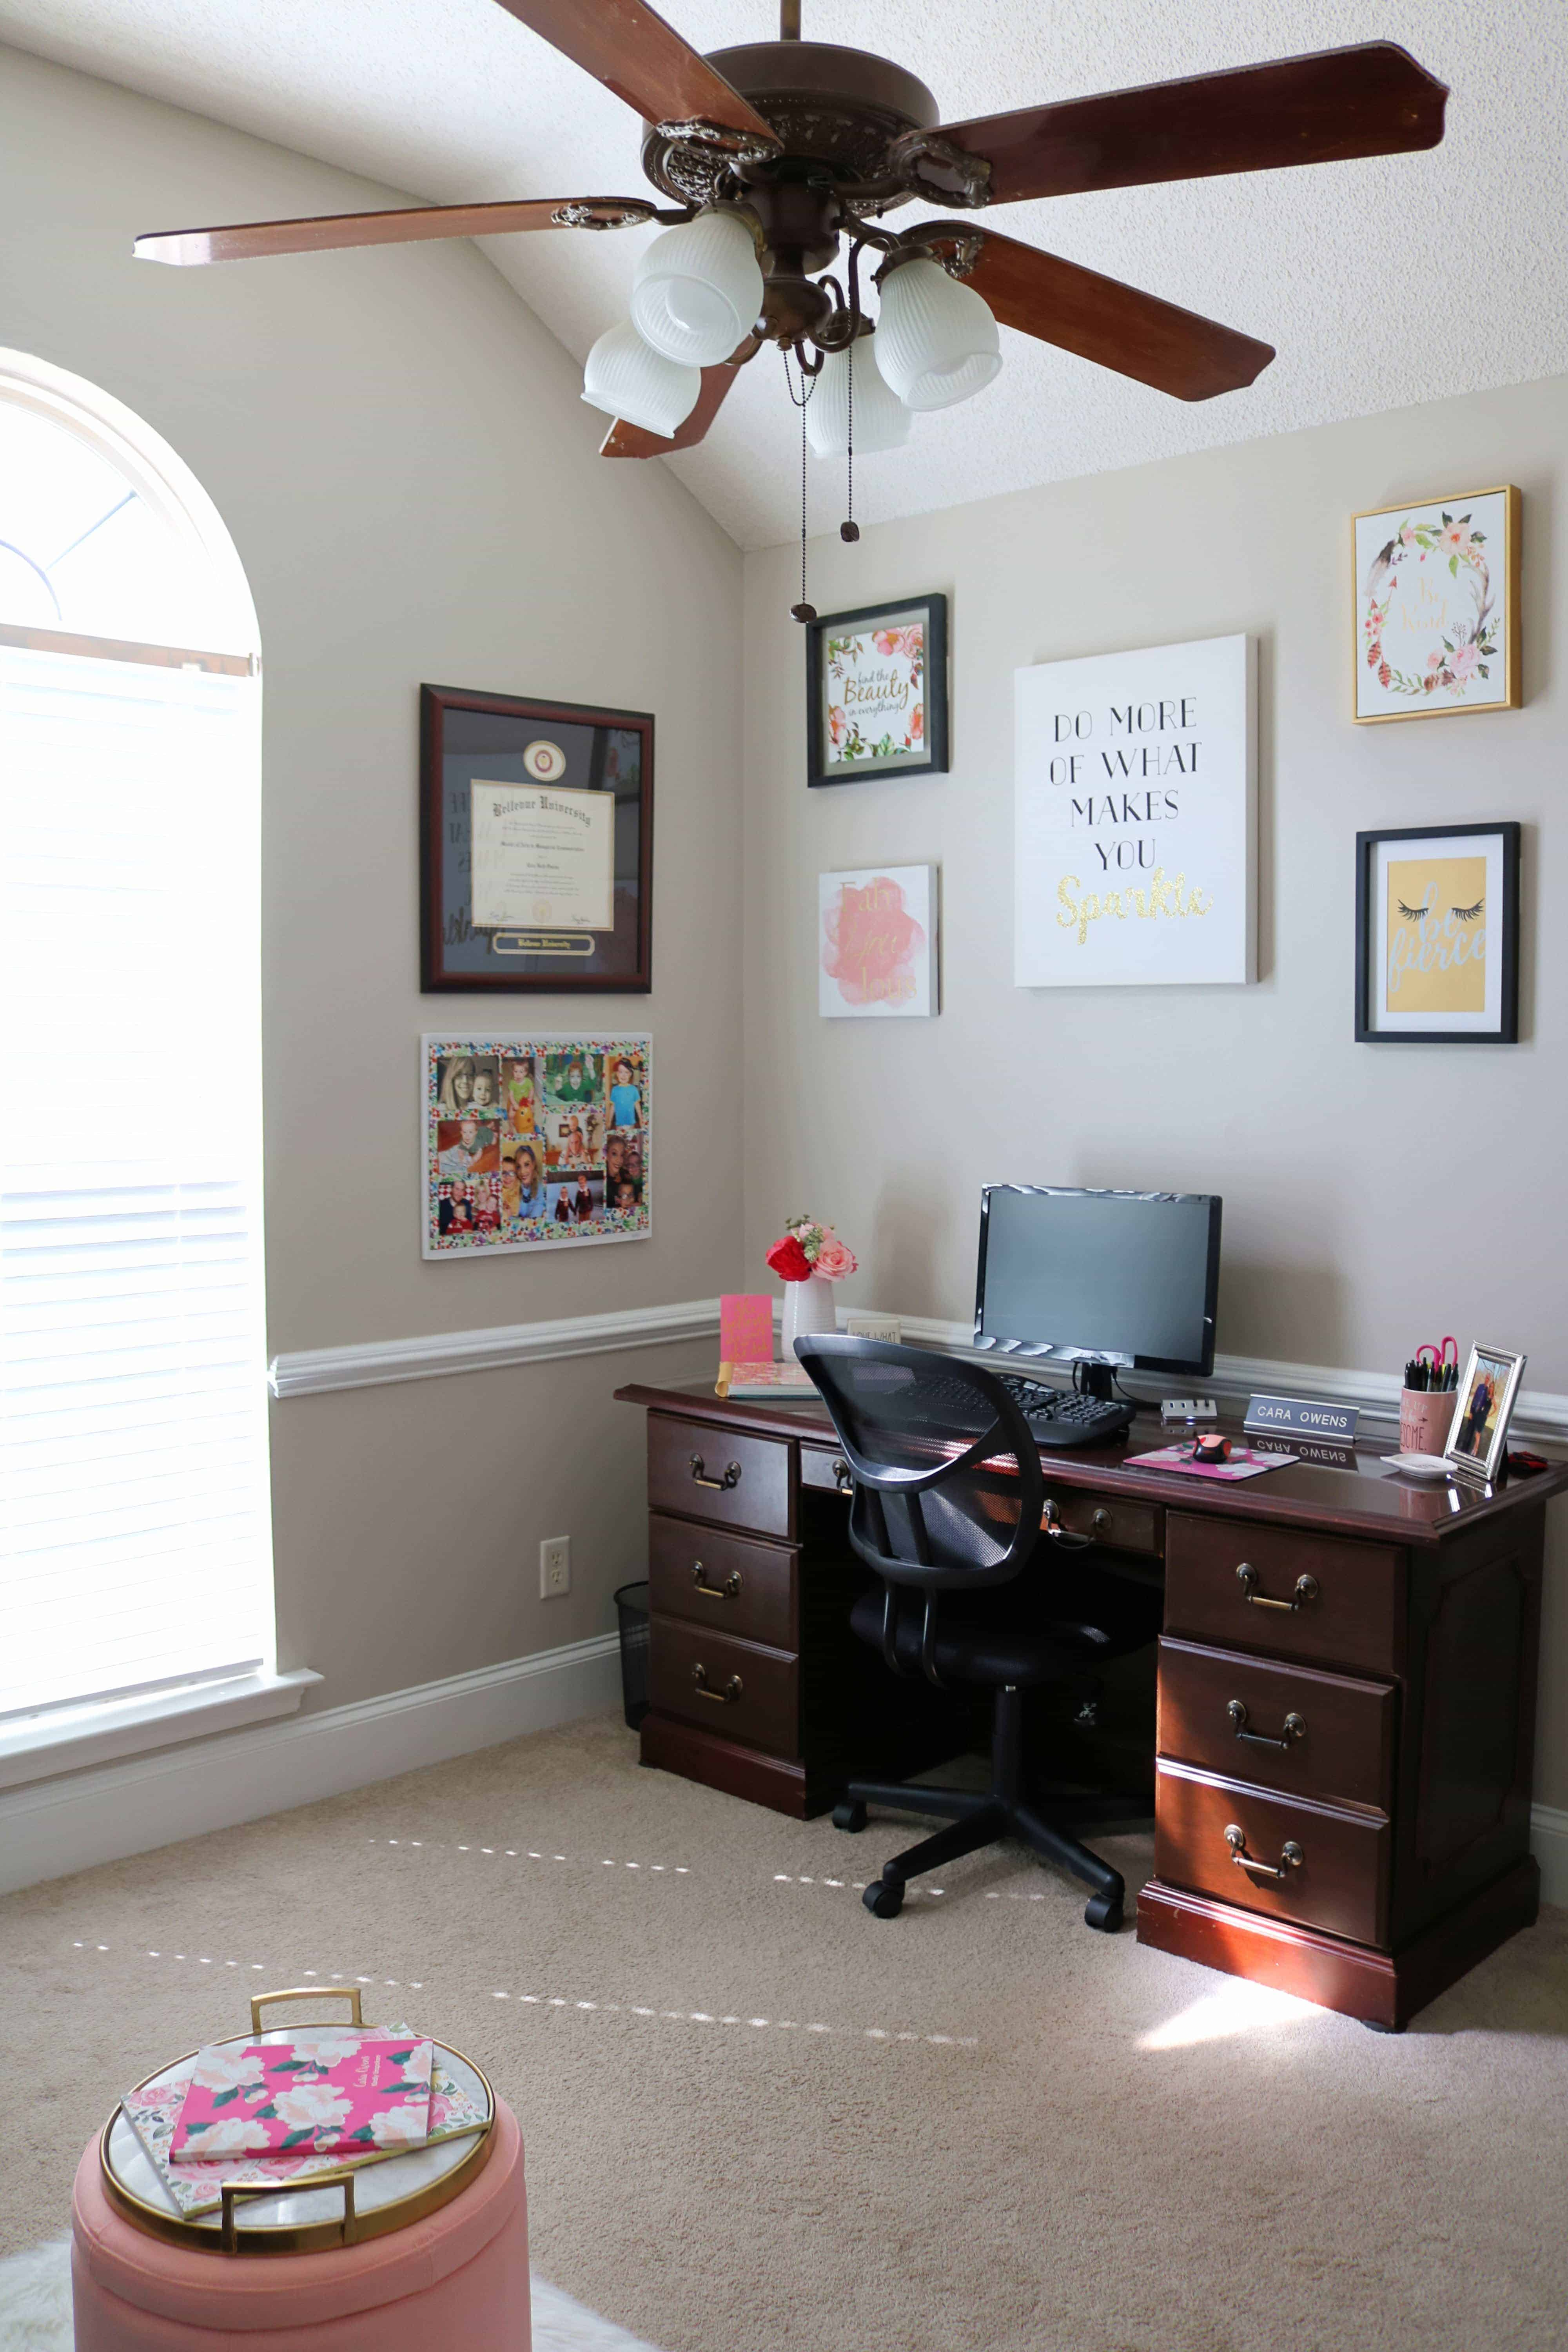 Create your dream home office space with my helpful tips for decorating a home office! Plus, in case you need inspiration check out my home office reveal with the cutest home office decor!